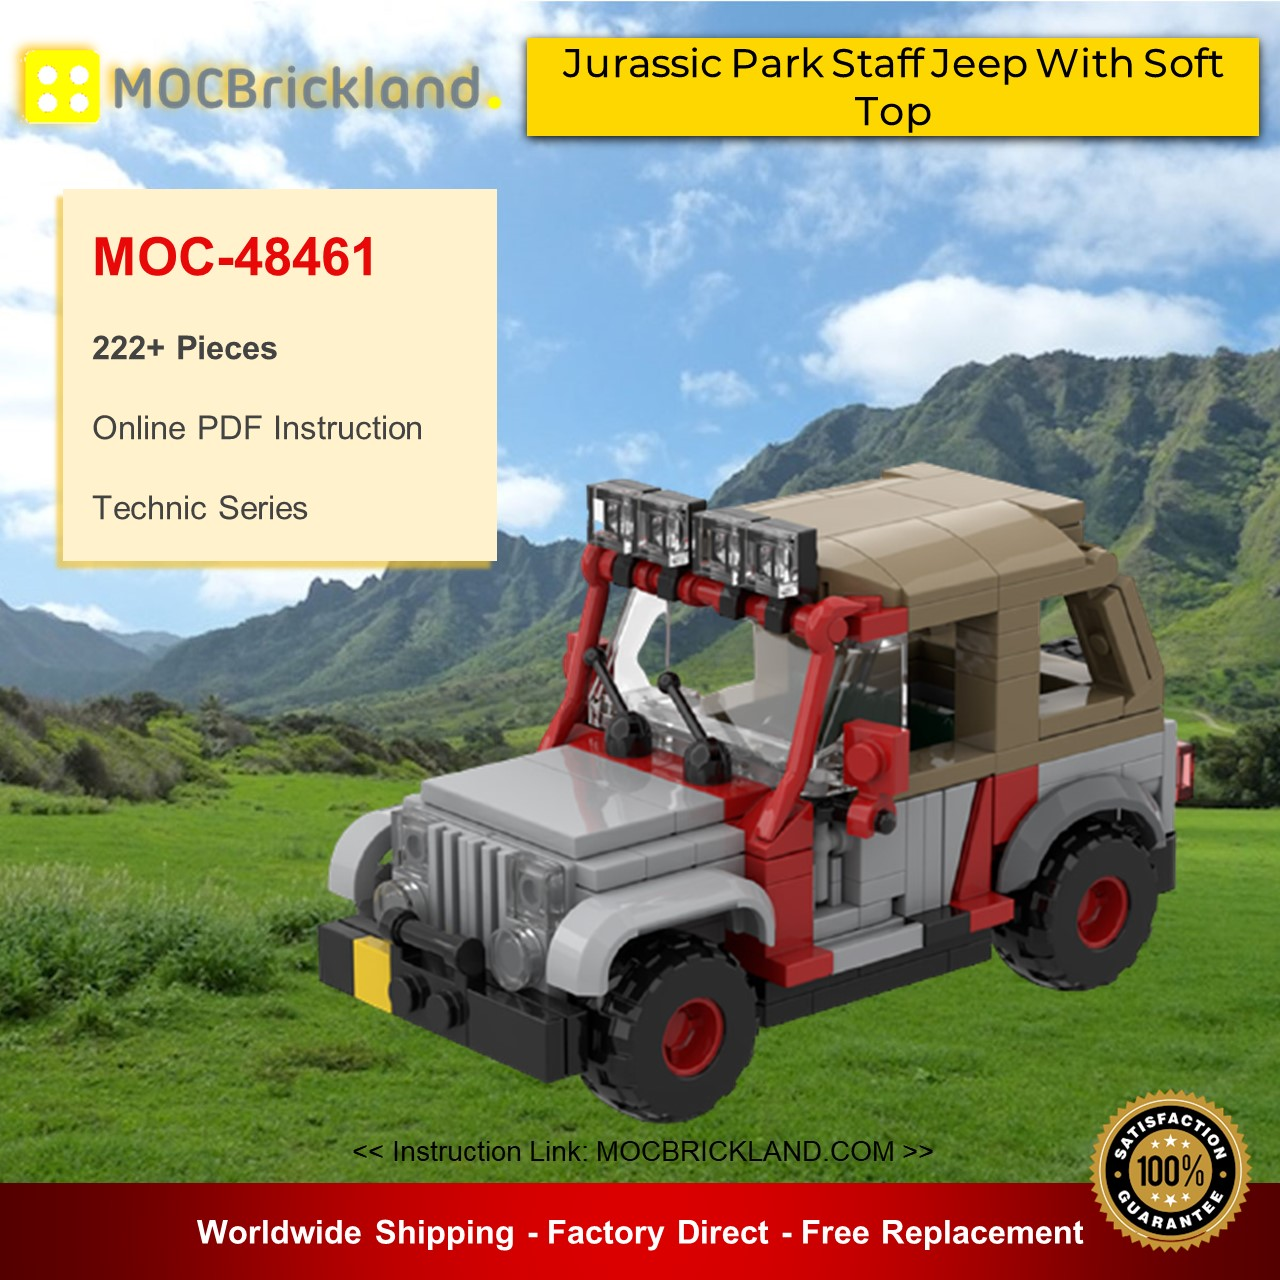 Technic MOC-48461 Jurassic Park Staff Jeep With Soft Top By Miro MOCBRICKLAND